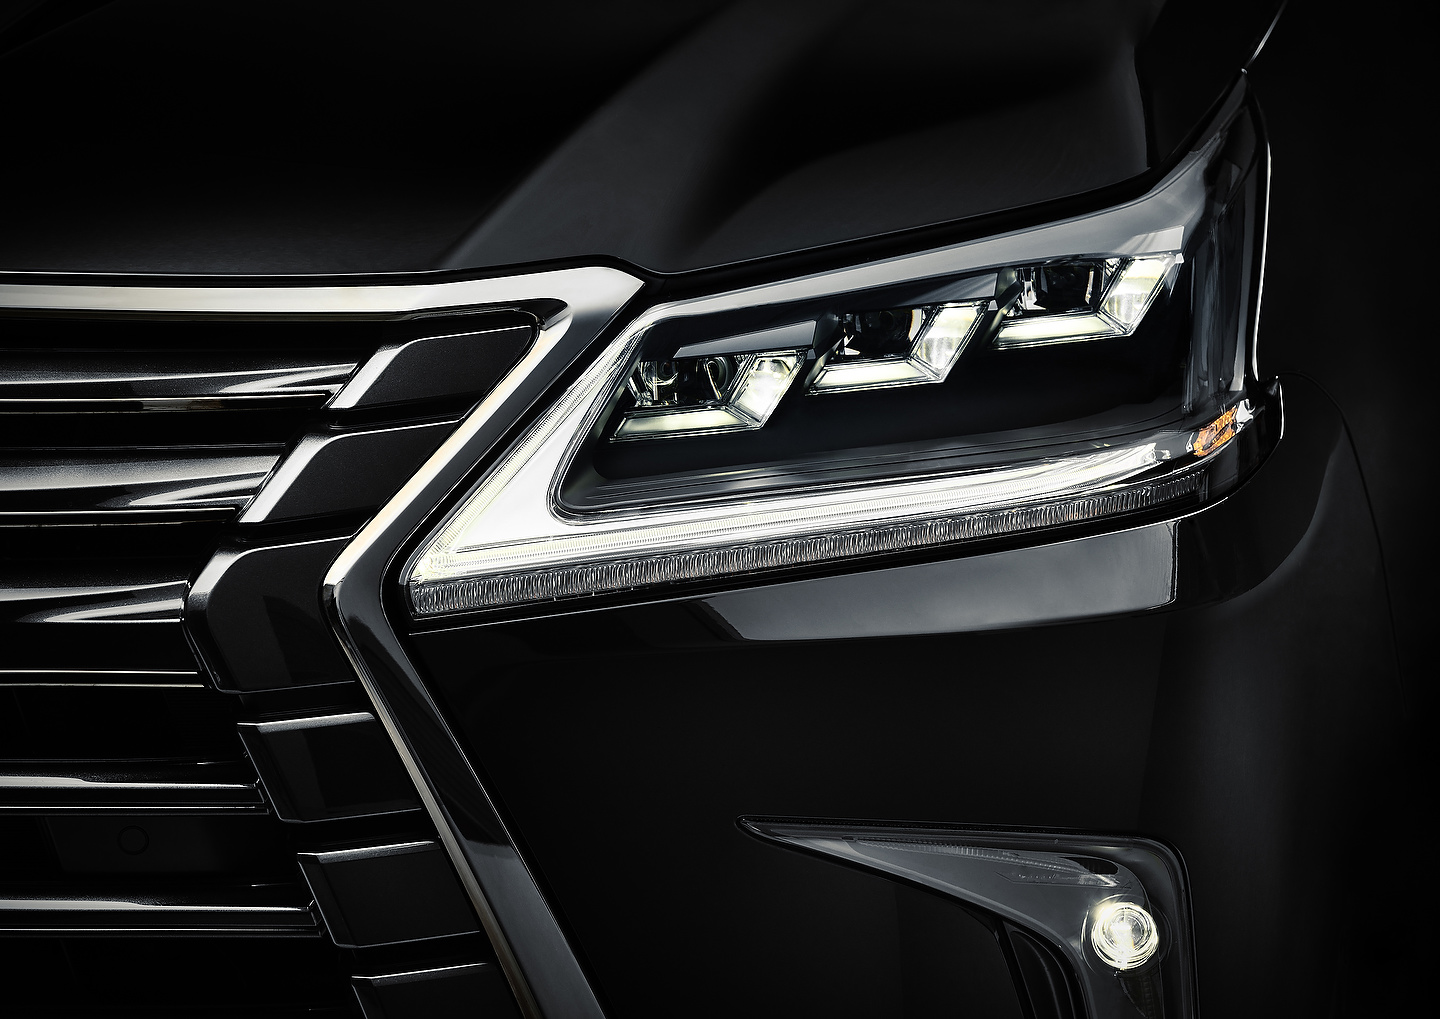 2019 Lexus LX 570 Inspiration | Photo: Lexus